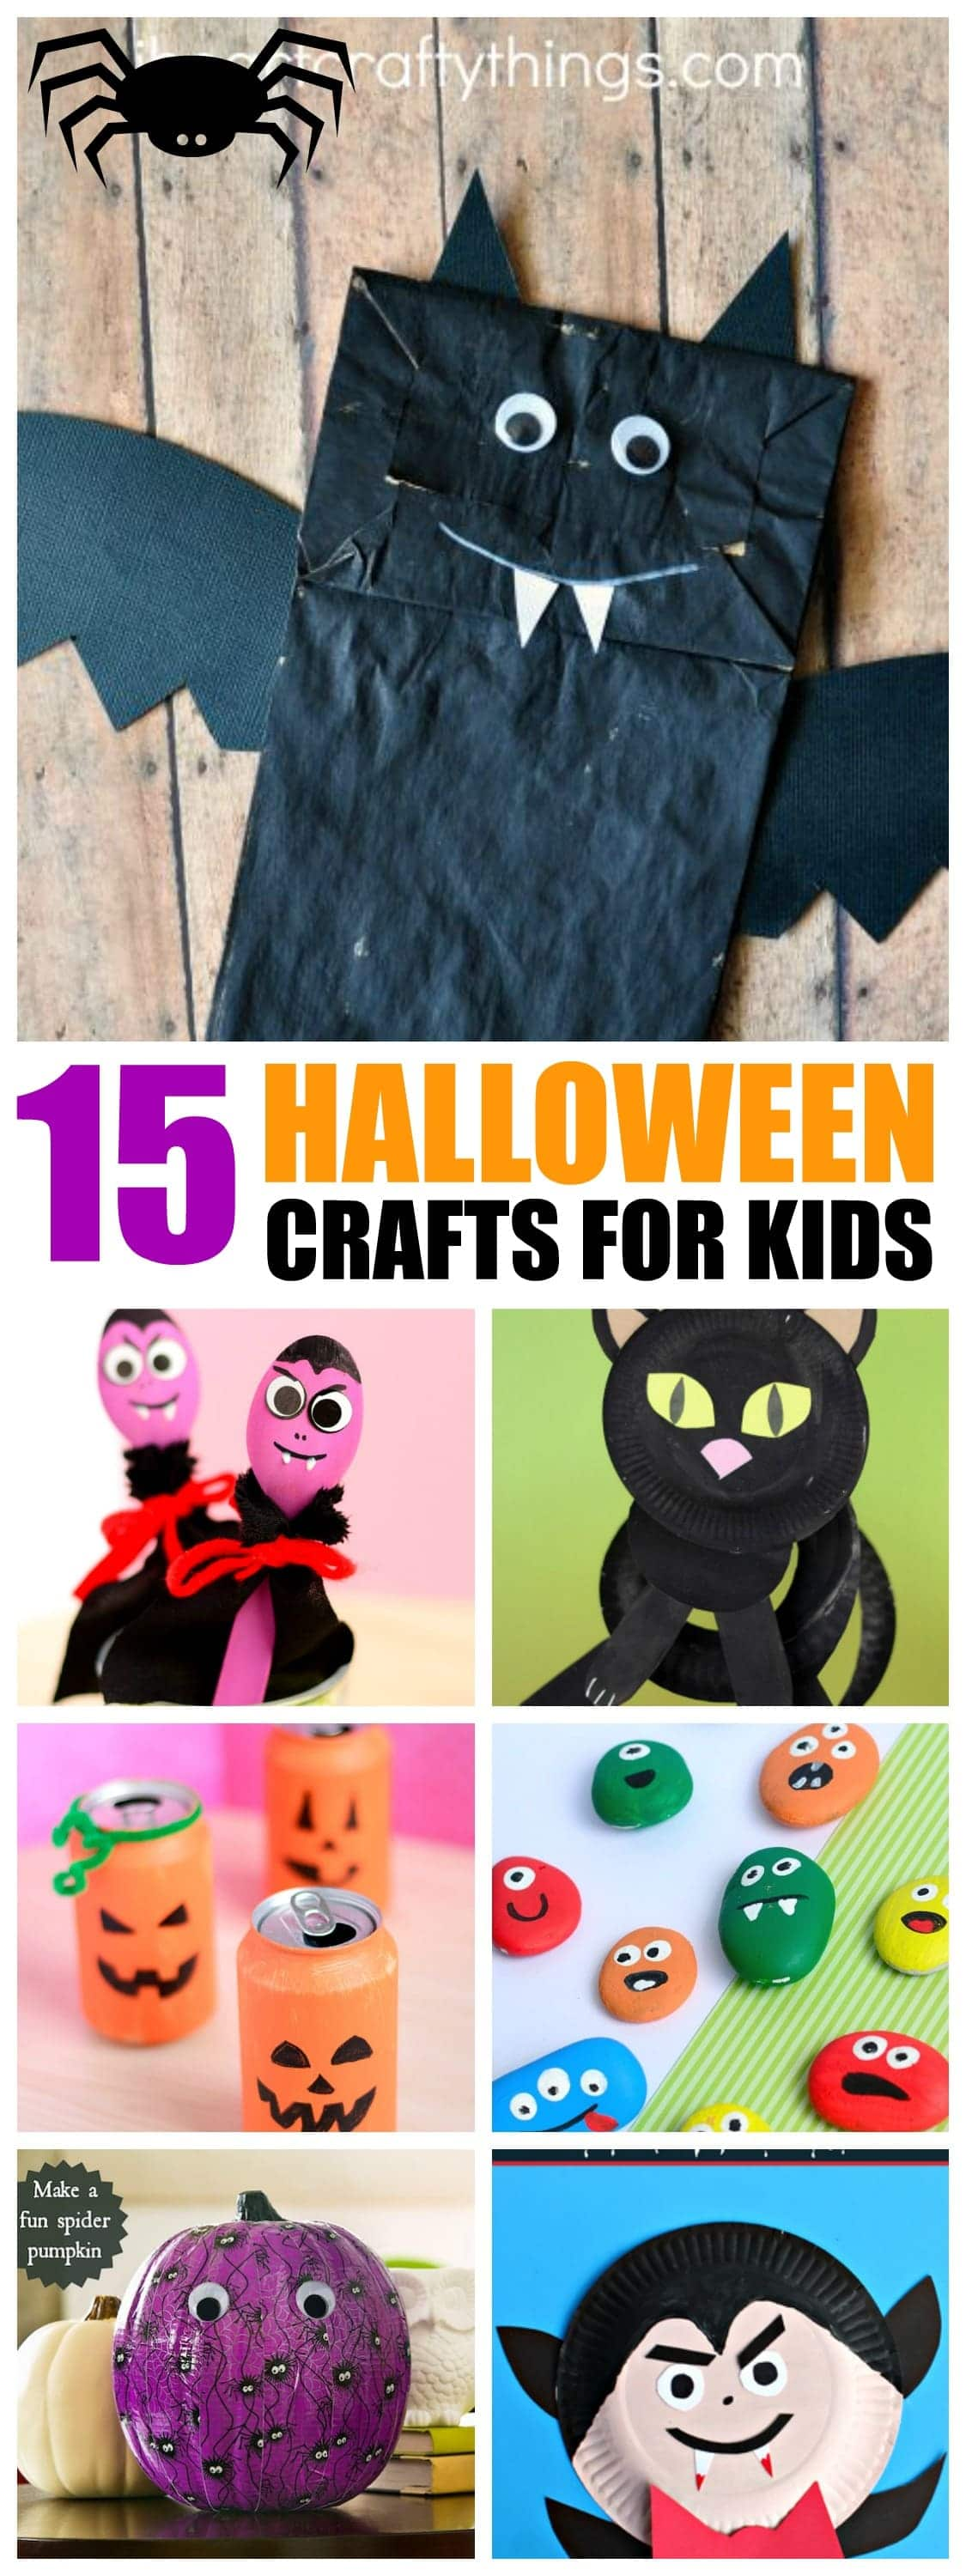 15+ Halloween crafts for kids | Kid friendly Halloween Projects | Paper plates, paper bags and more!